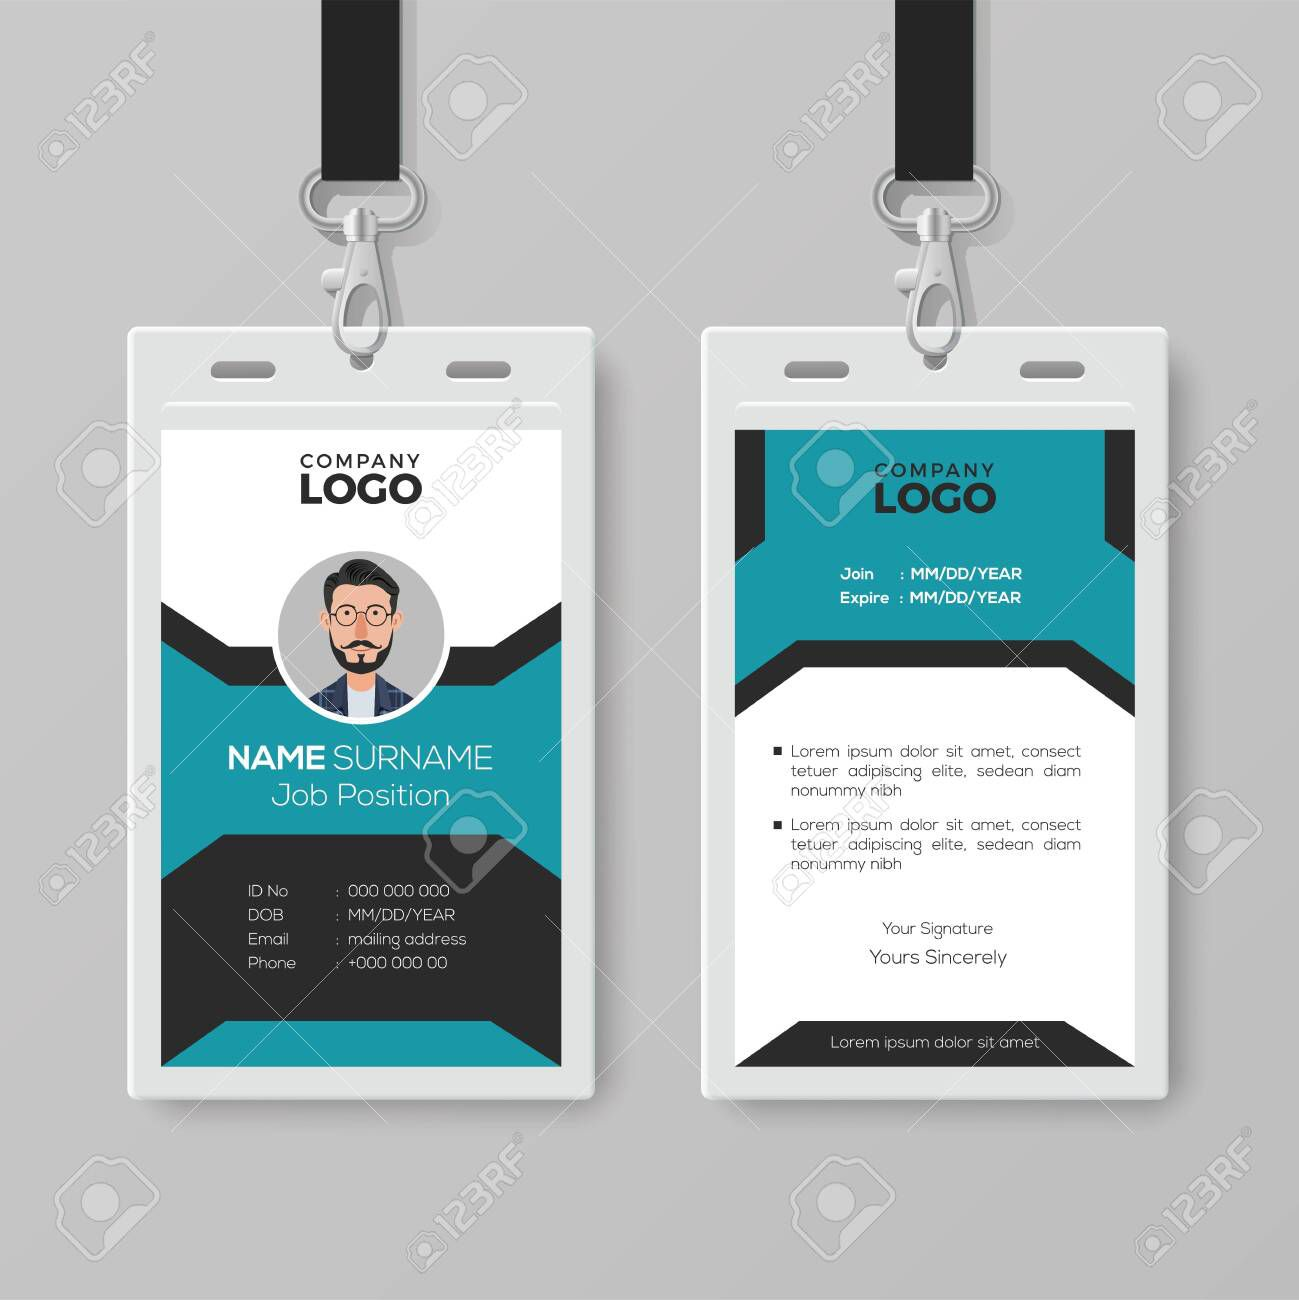 003 Staggering Employee Id Card Template Example  Free Download Psd WordFull